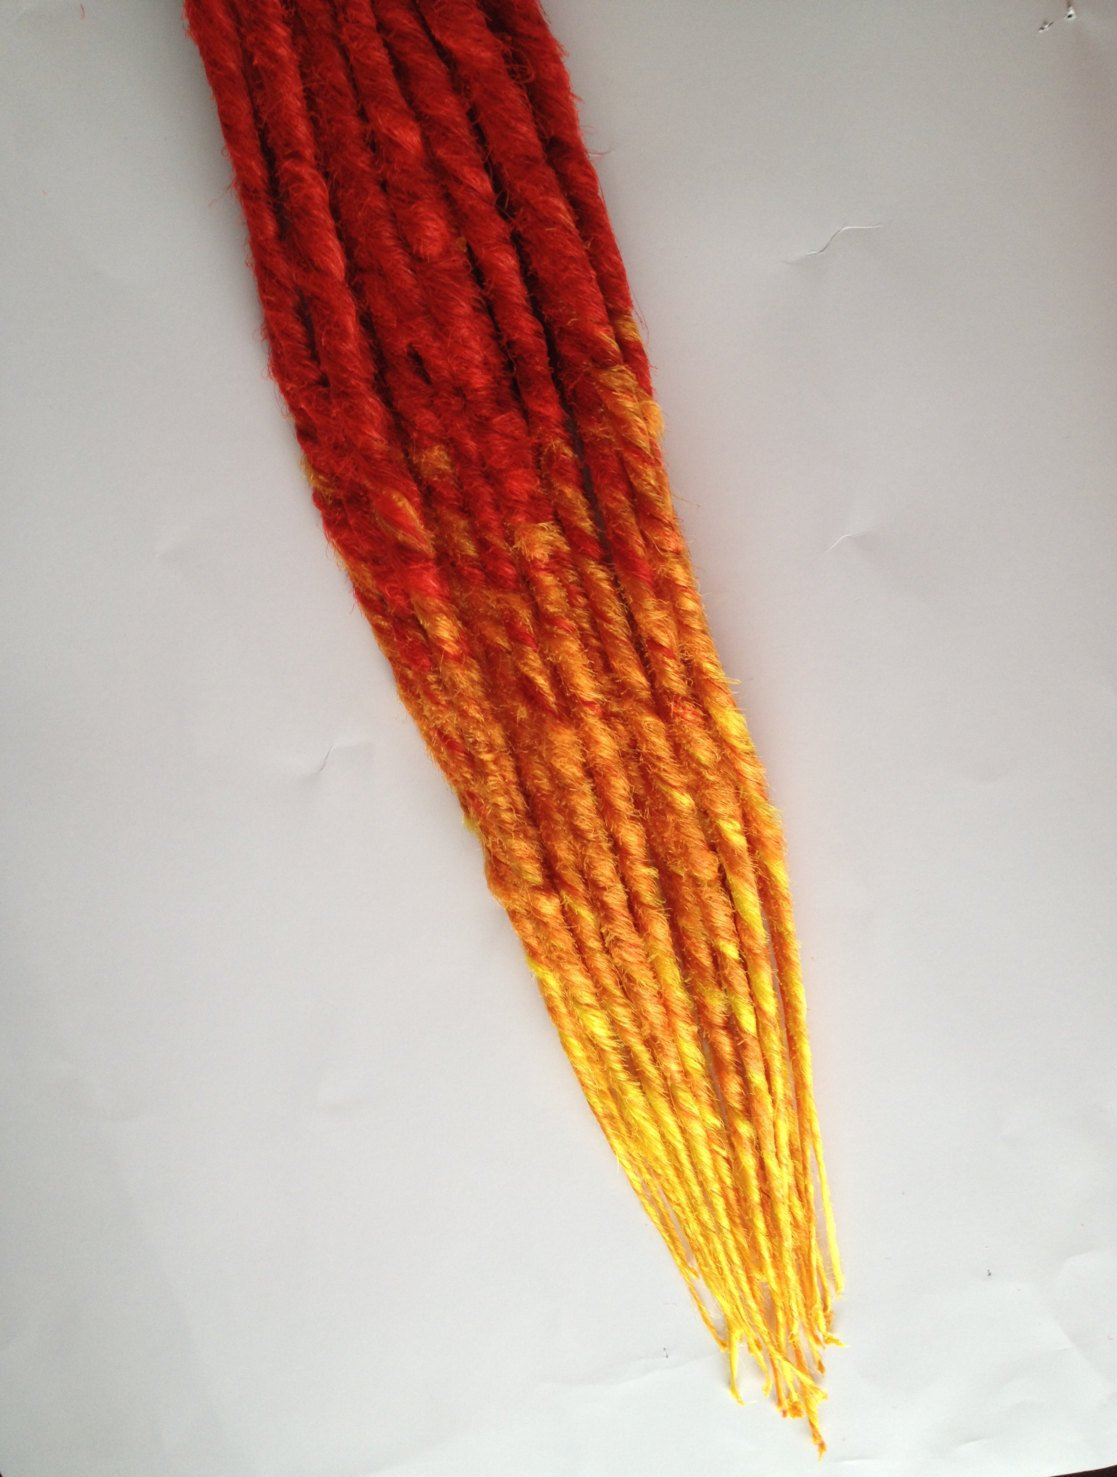 20 SE Dreads Custom Synthetic Dreadlock Hair Extensions Flame Fire Red Orange Yellow Ombre